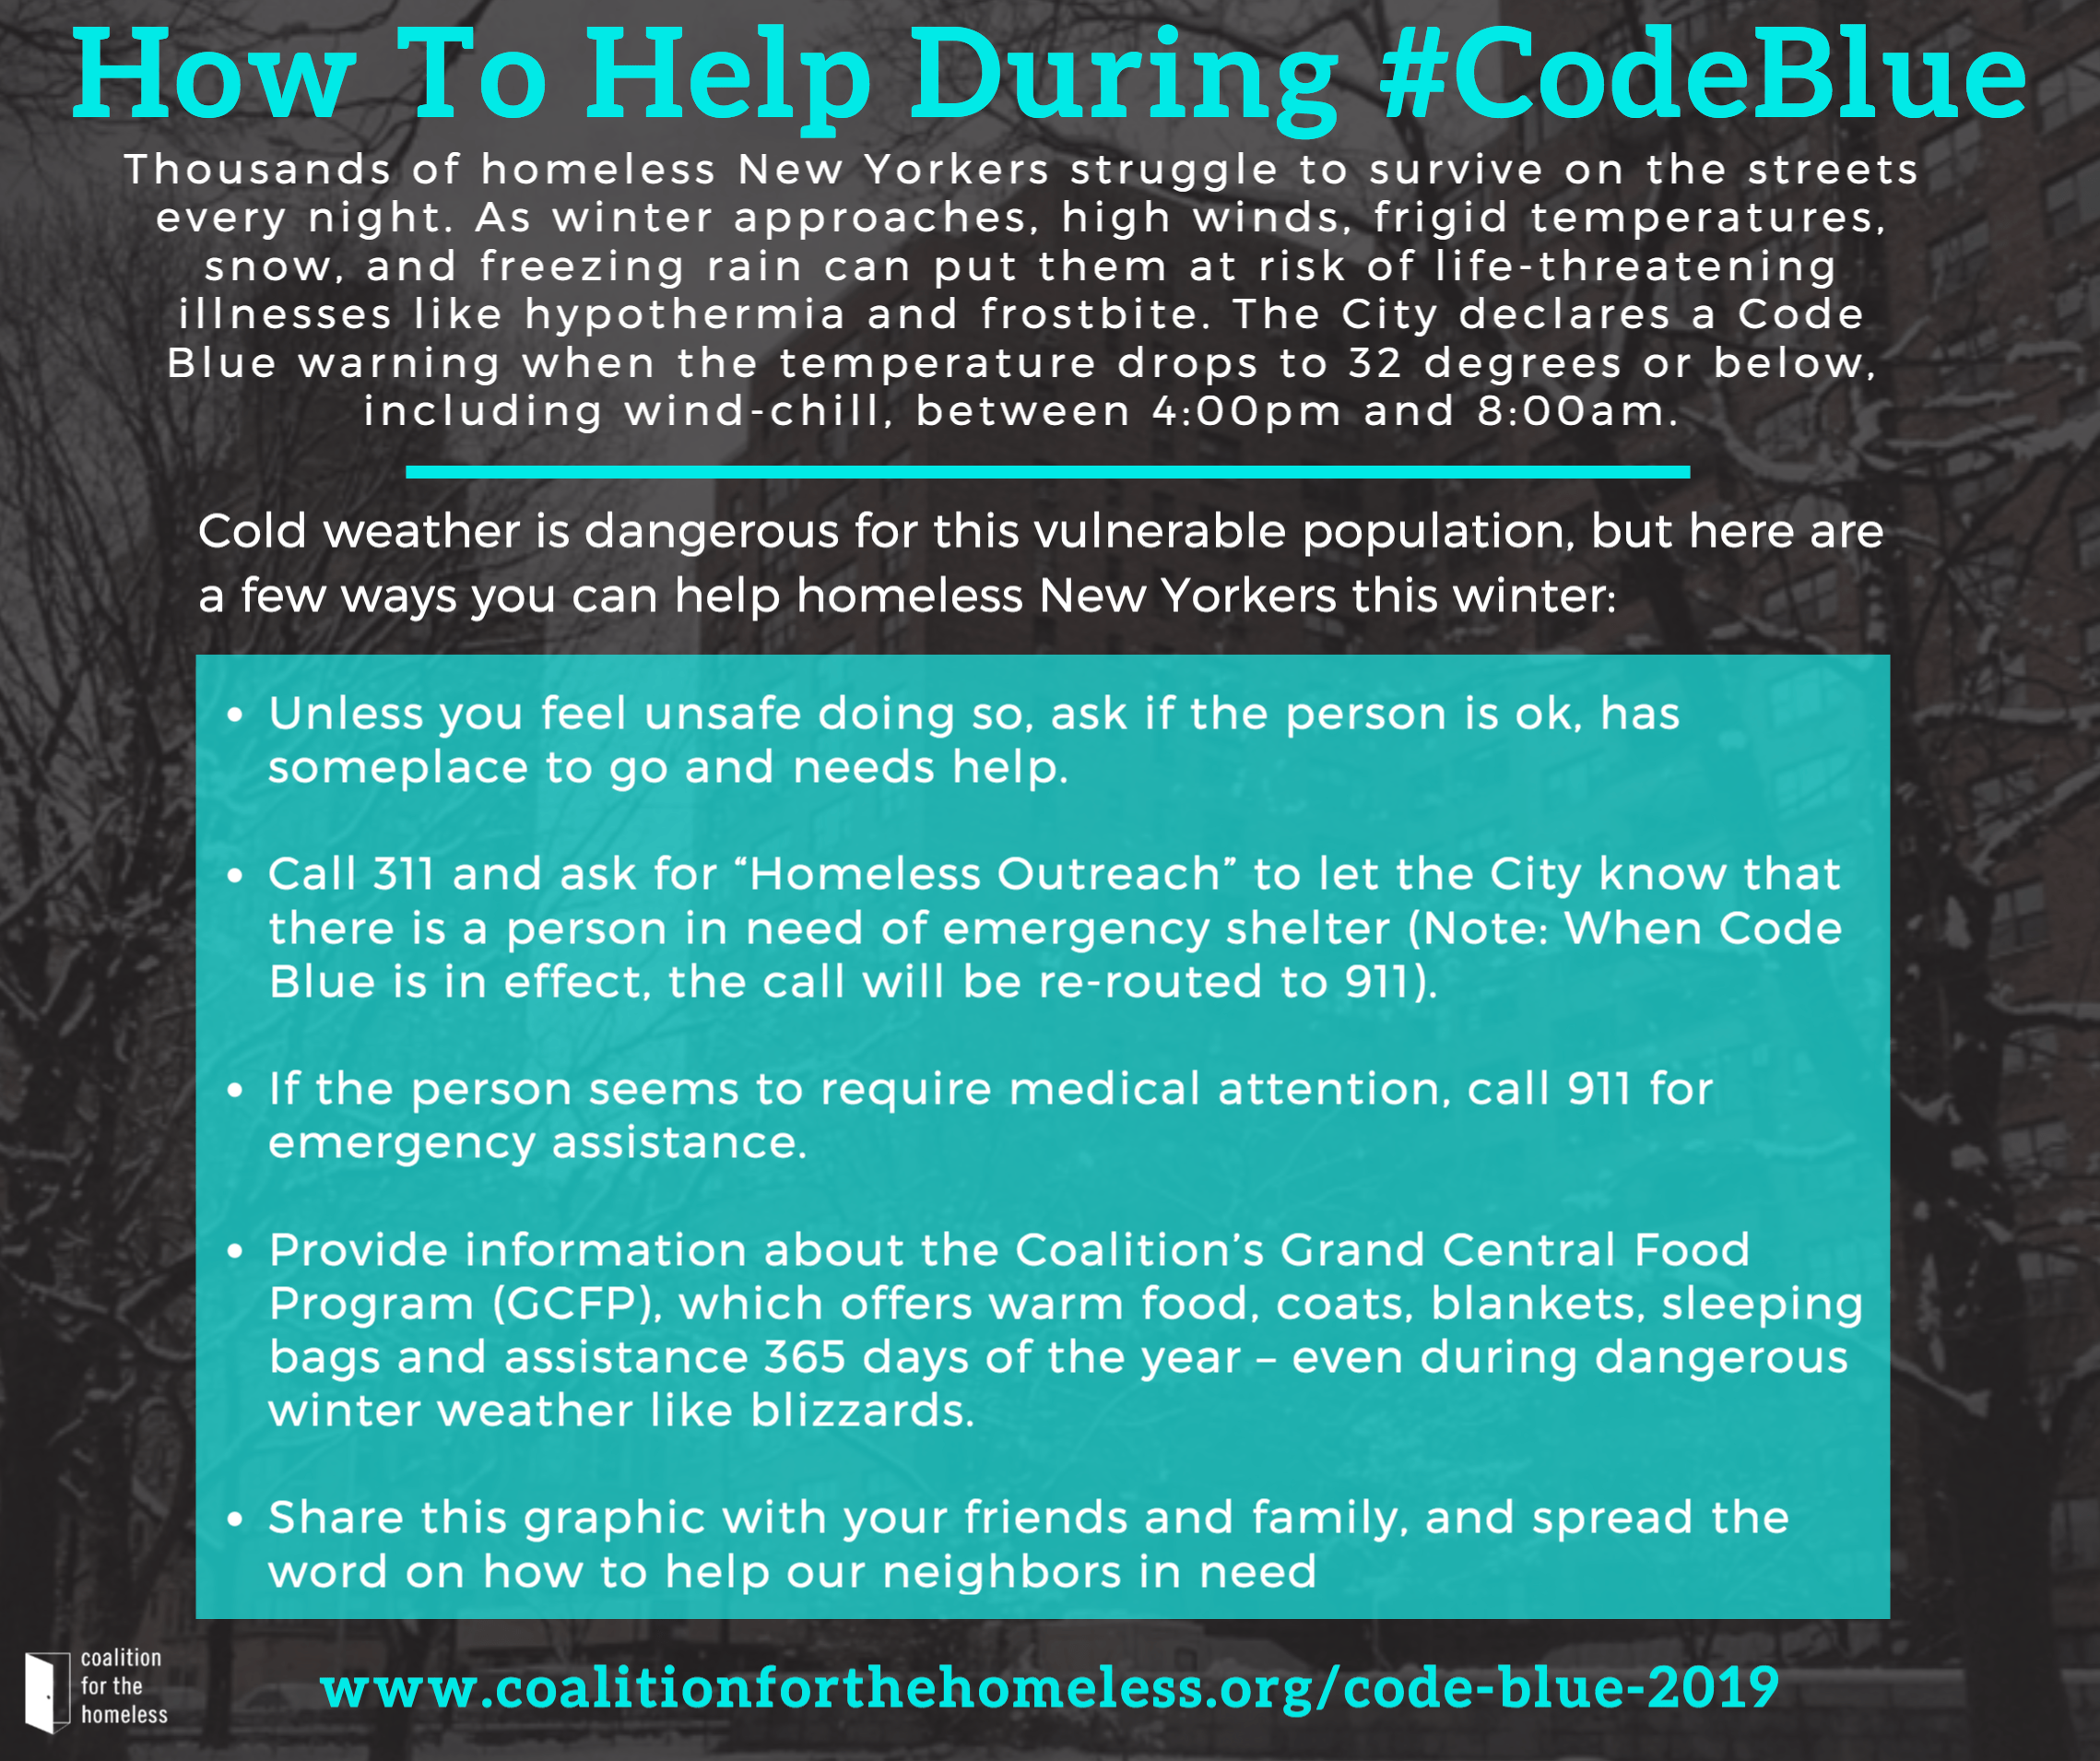 """Cold weather is dangerous for this vulnerable population, but here are a few ways you can help homeless New Yorkers this winter: Unless you feel unsafe doing so, ask if the person is ok, has someplace to go and needs help. Call 311 and ask for """"Homeless Outreach"""" to let the City know that there is a person in need of emergency shelter (Note: When Code Blue is in effect, the call will be re-routed to 911). If the person seems to require medical attention, call 911 for emergency assistance. Provide information about the Coalition's Grand Central Food Program (GCFP), which offers warm food, coats, blankets, sleeping bags, and assistance 365 days of the year – even during dangerous winter weather like blizzards.Click herefor a list of stops. Share this graphicwith your friends and family, and spread the word on how to help our neighbors in need:"""